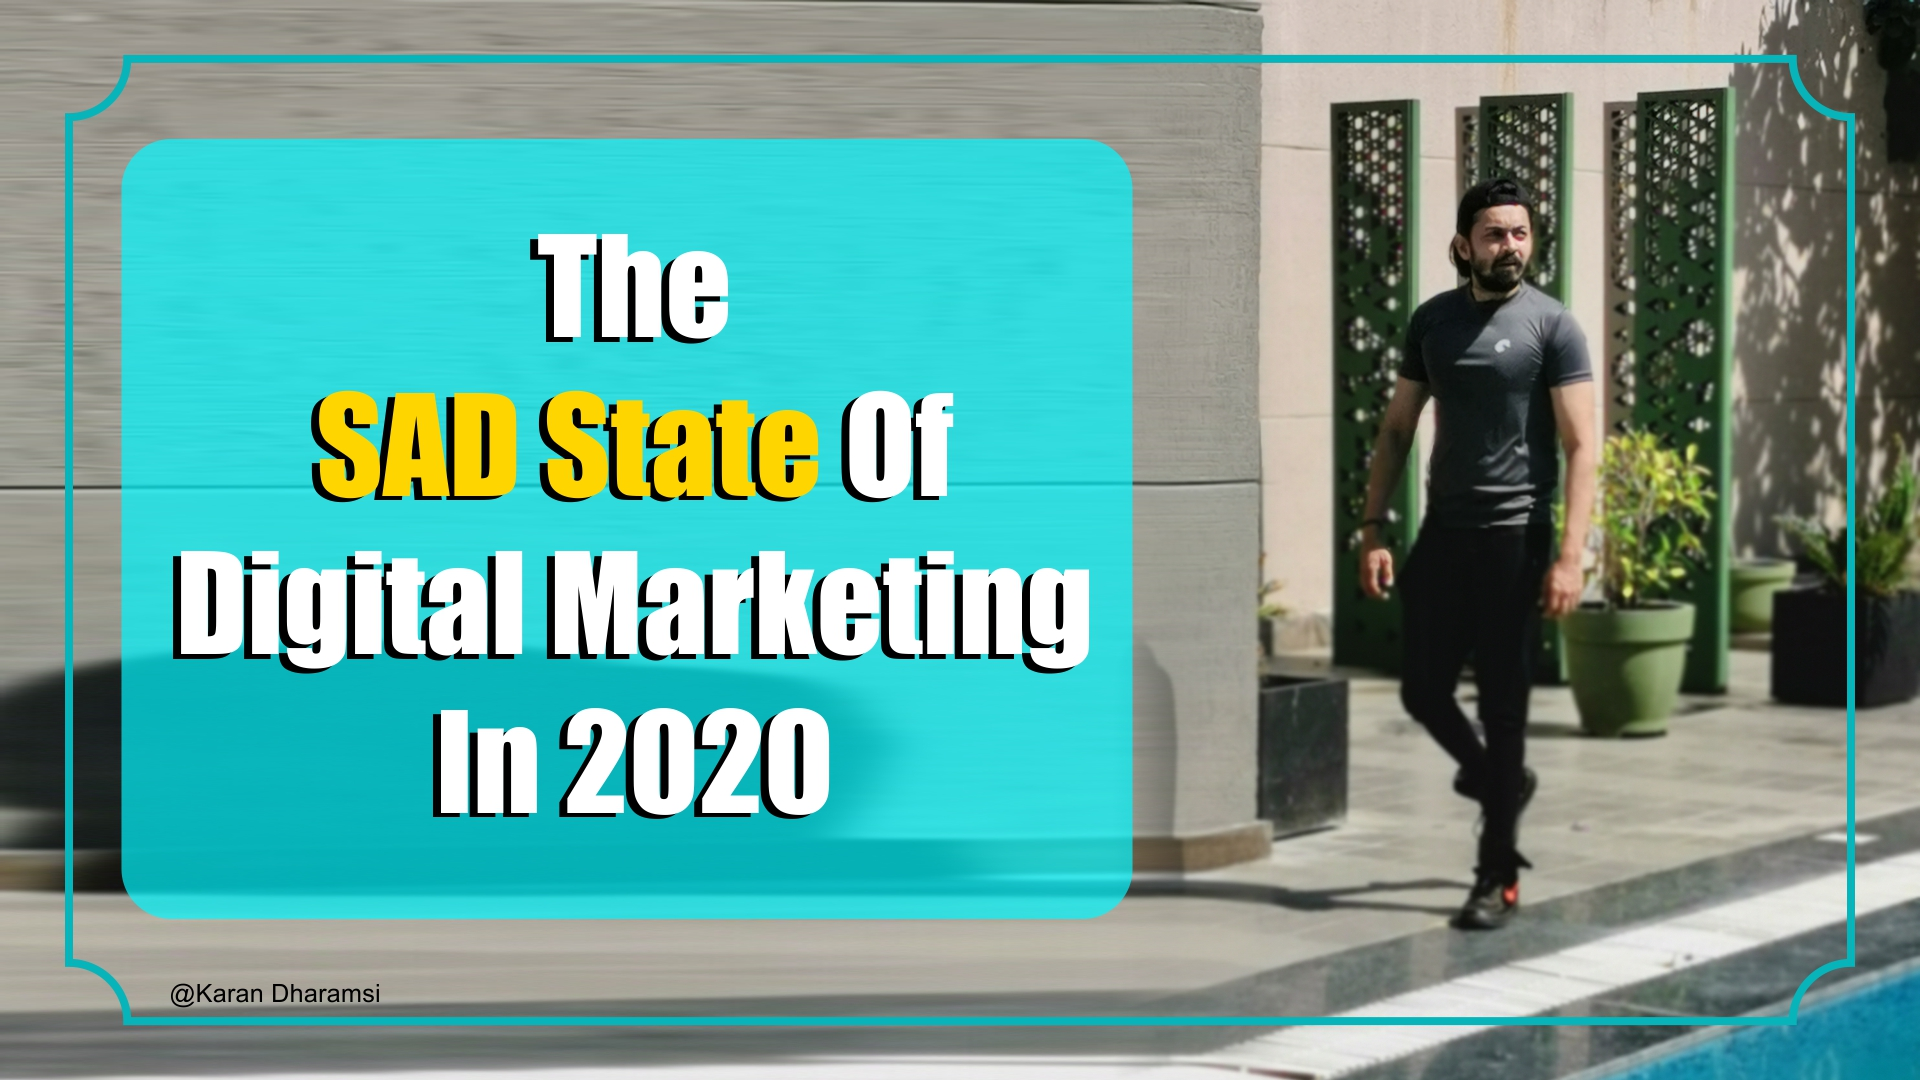 Sad State Digital Marketing India 2020 Karan Dharamsi The Marketing Nerdz